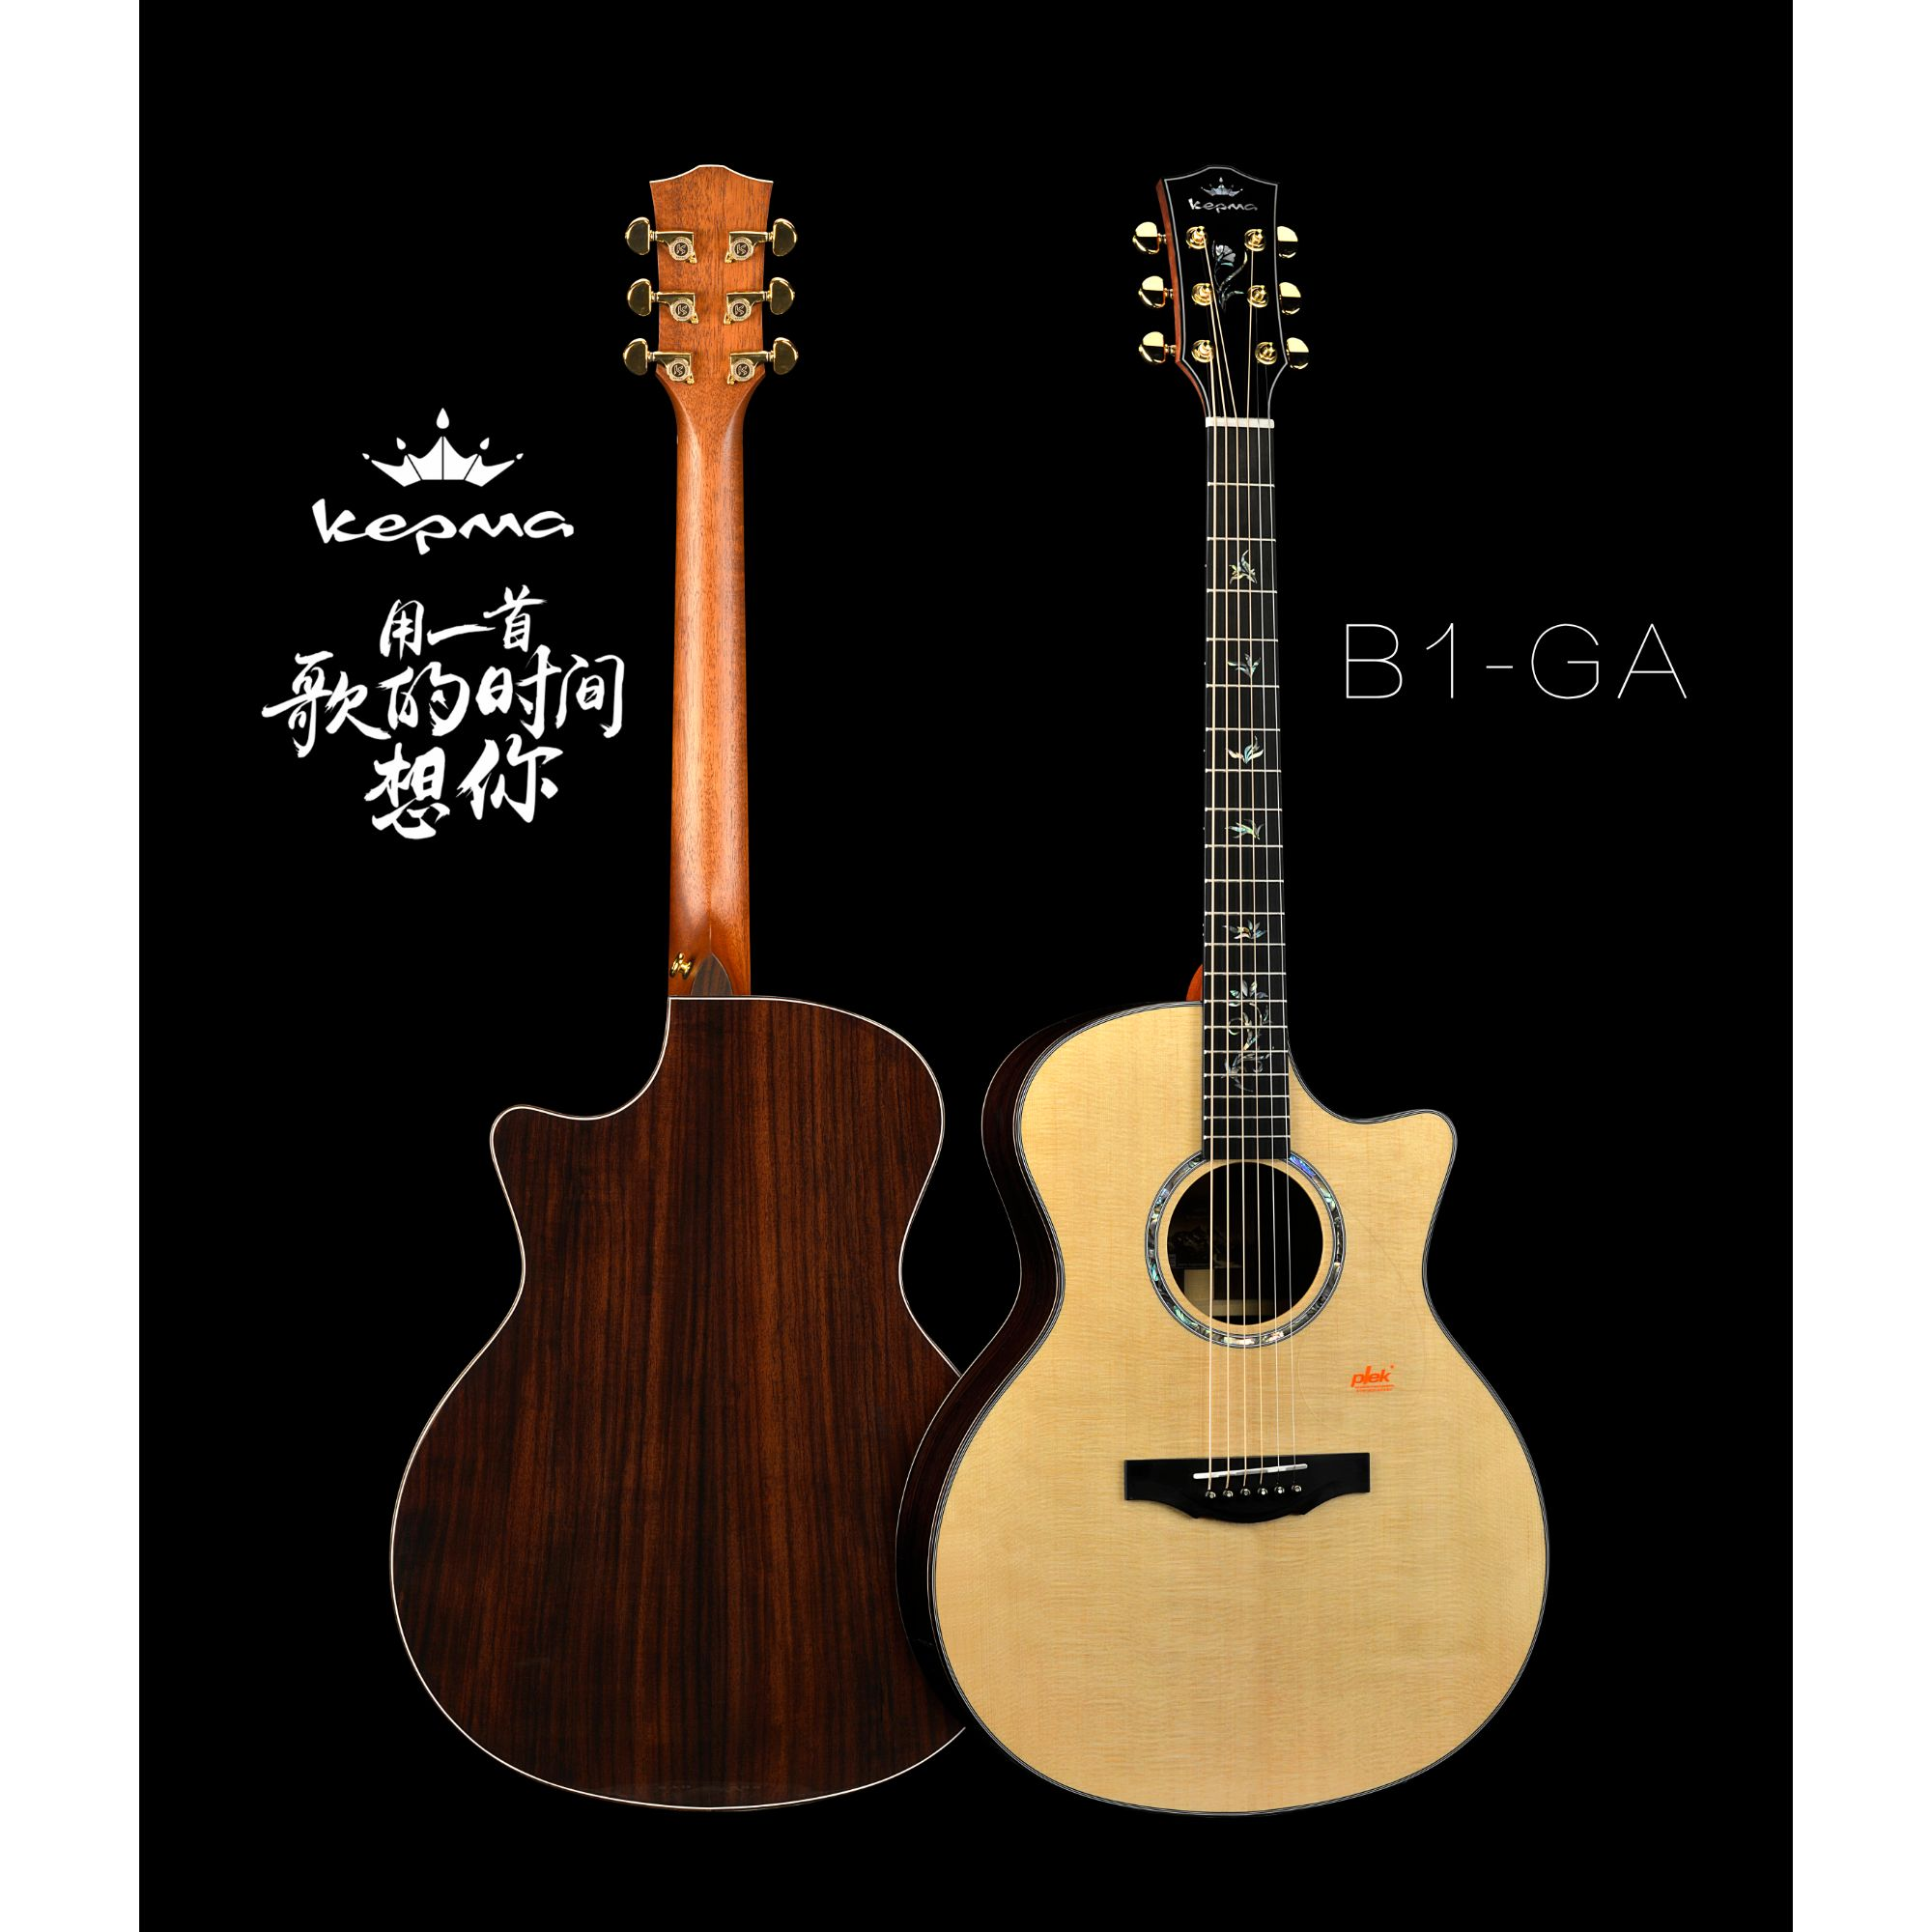 Kepma B1E GA Grand auditorium All solid guitar with Lr baggs stage pro anthem pick up